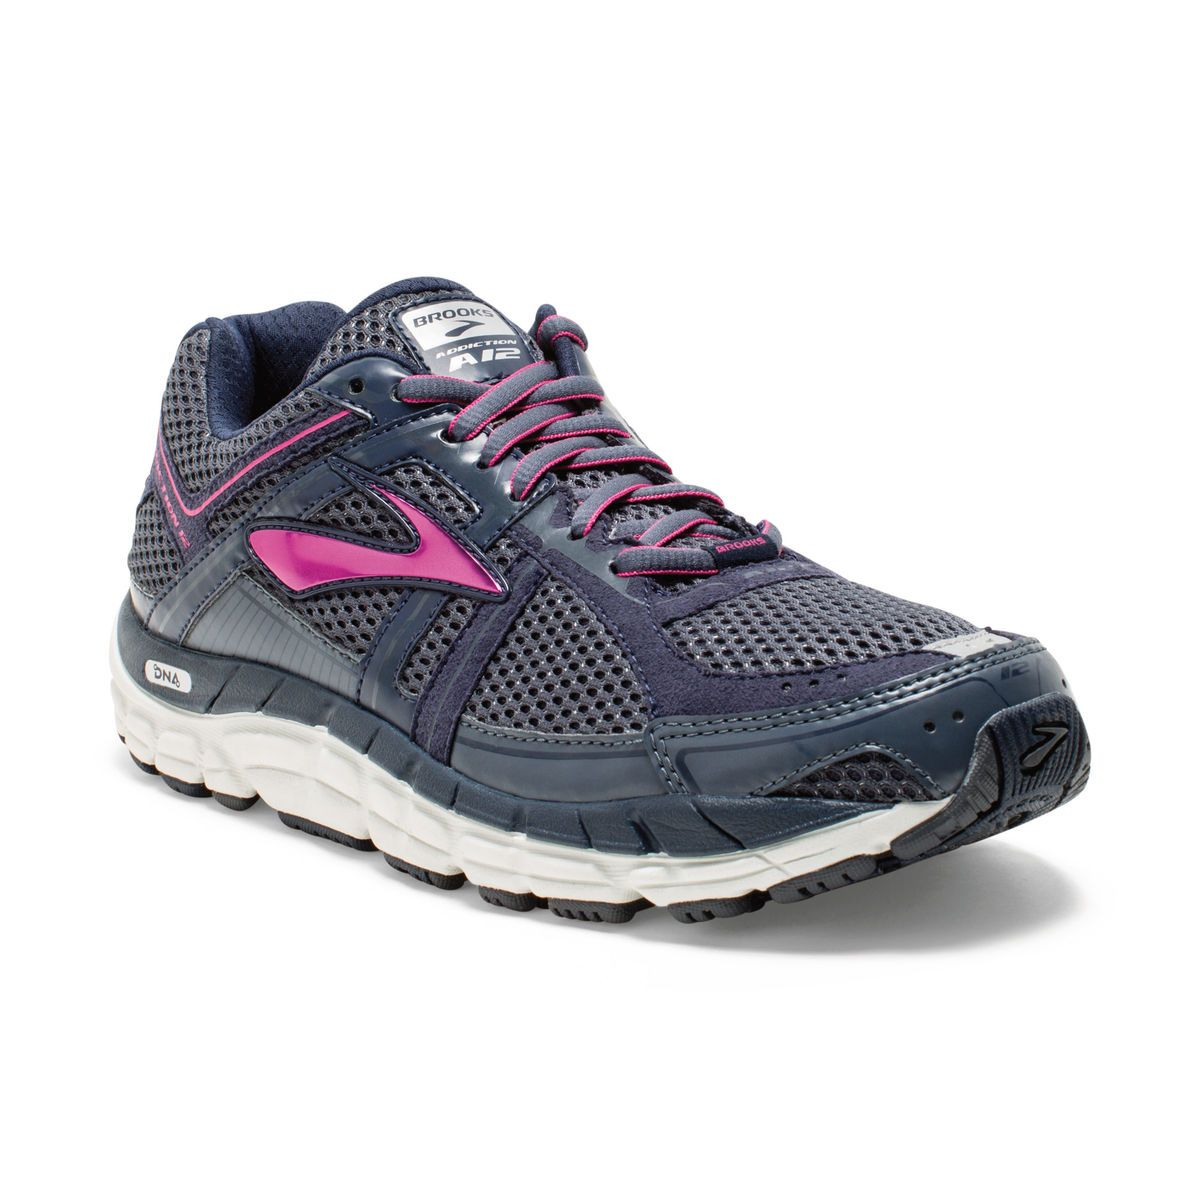 1a3b30d205423 Brooks Addiction 12 Women's Control Running Shoes | My Style ...